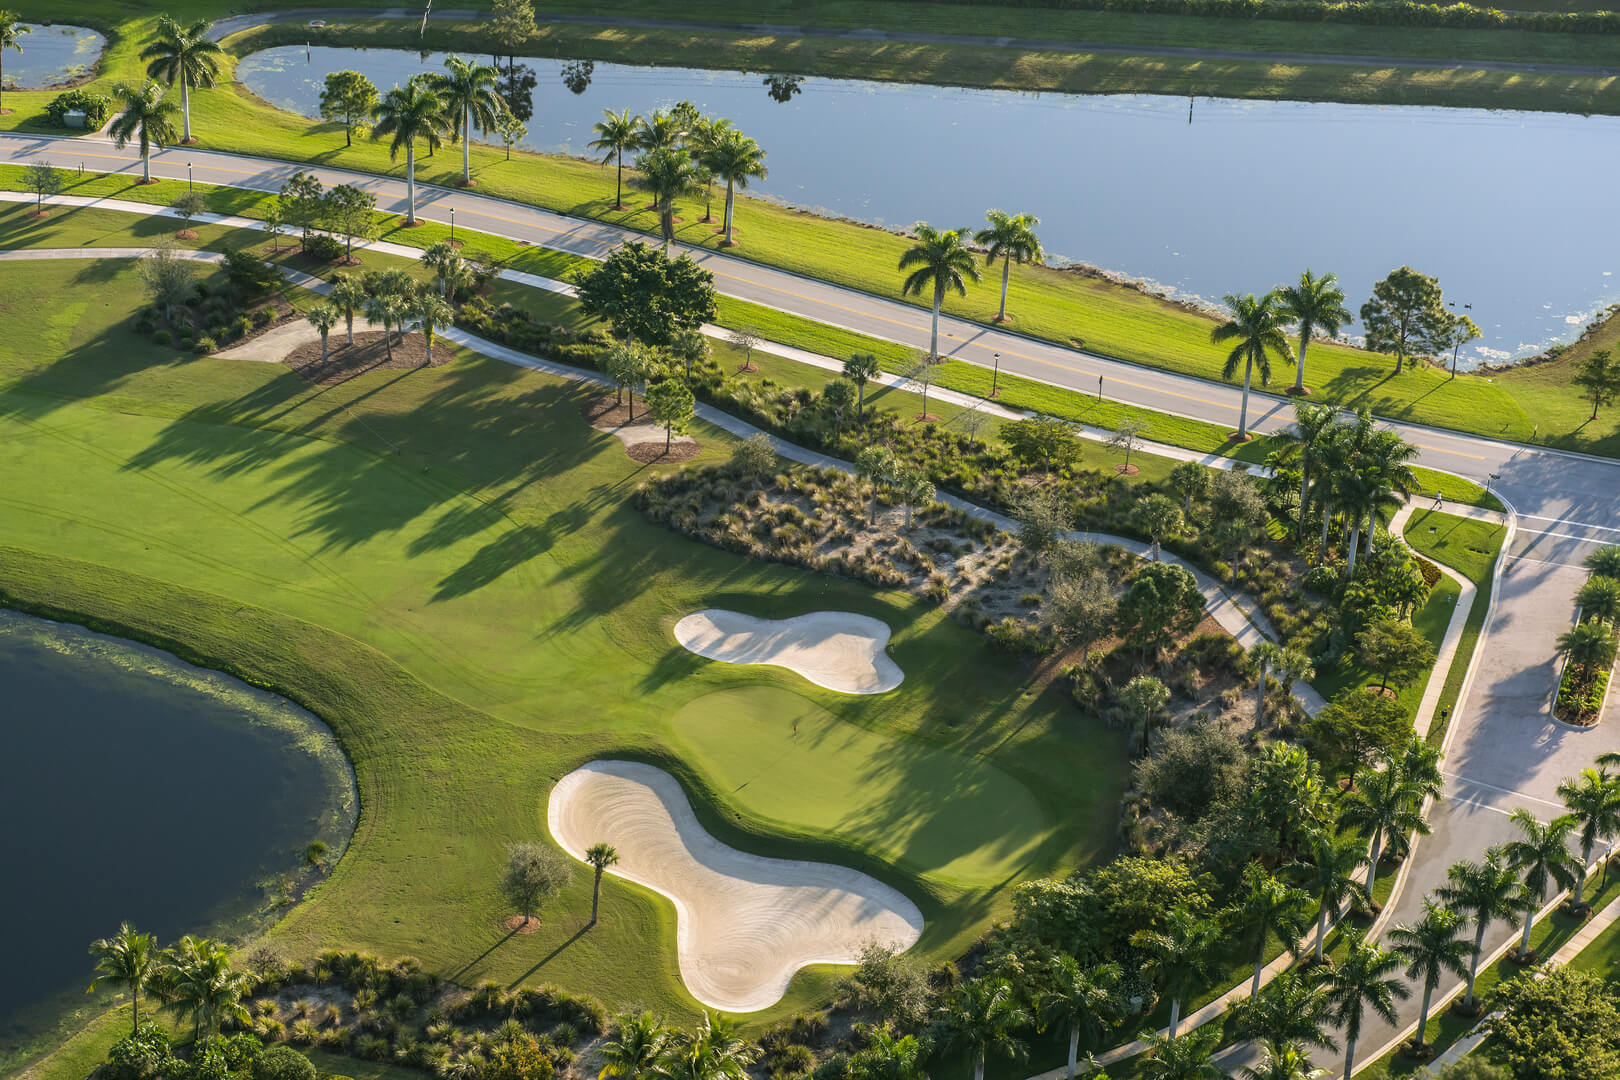 Aerial view of golf community in palm beach county florida, USA